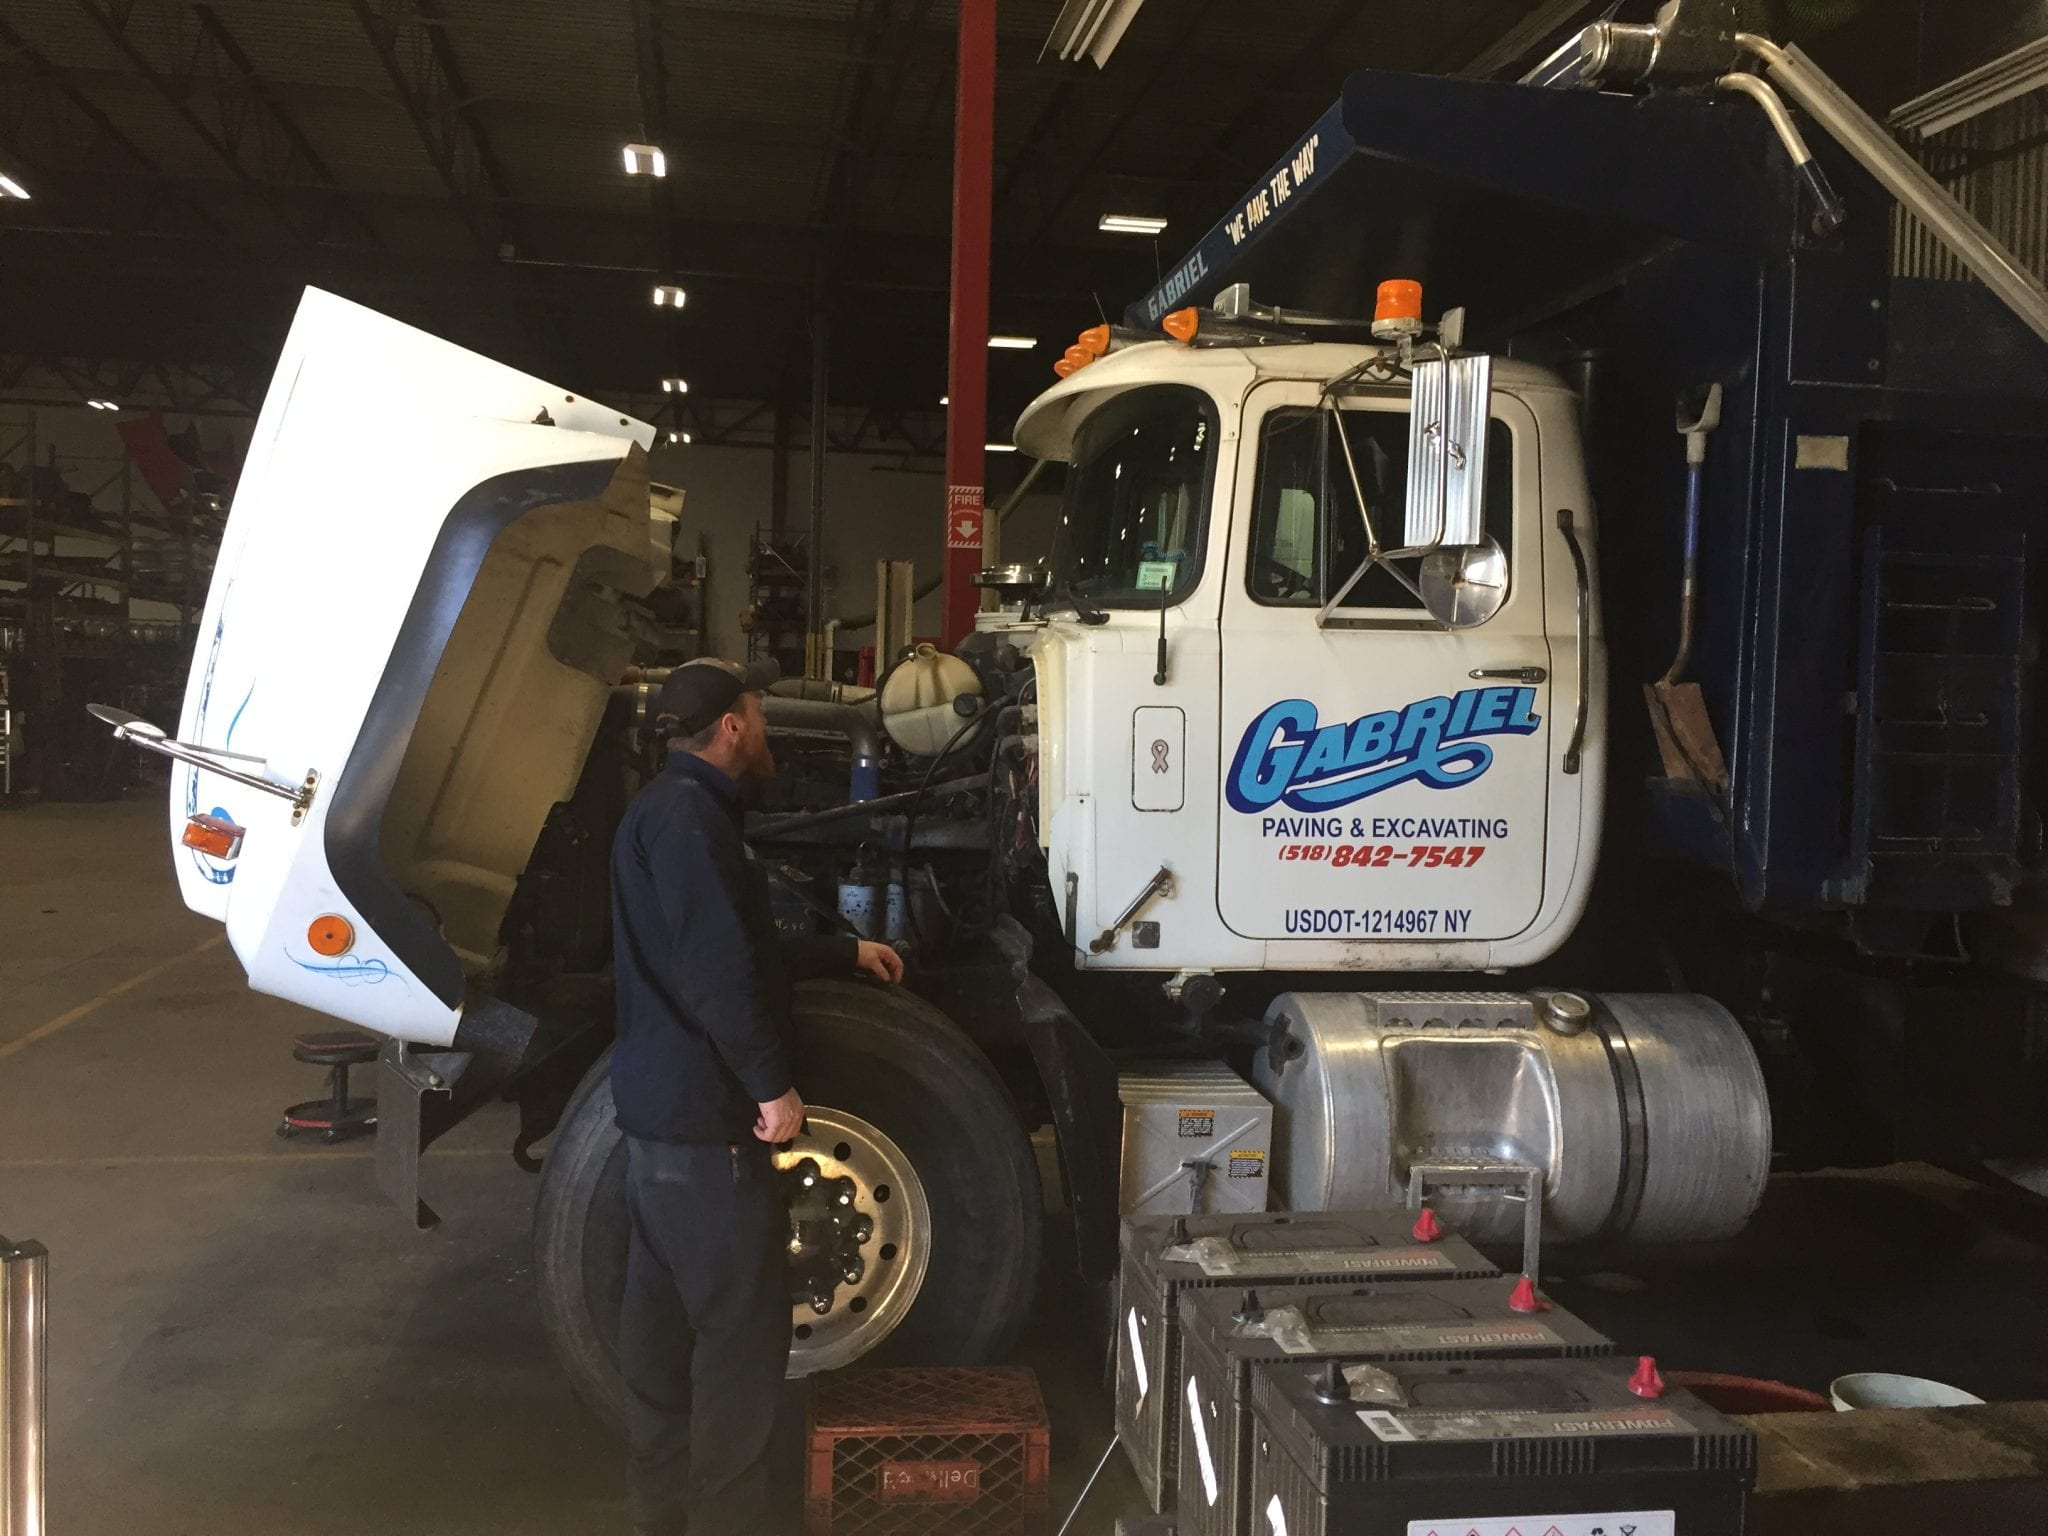 truck being repaired